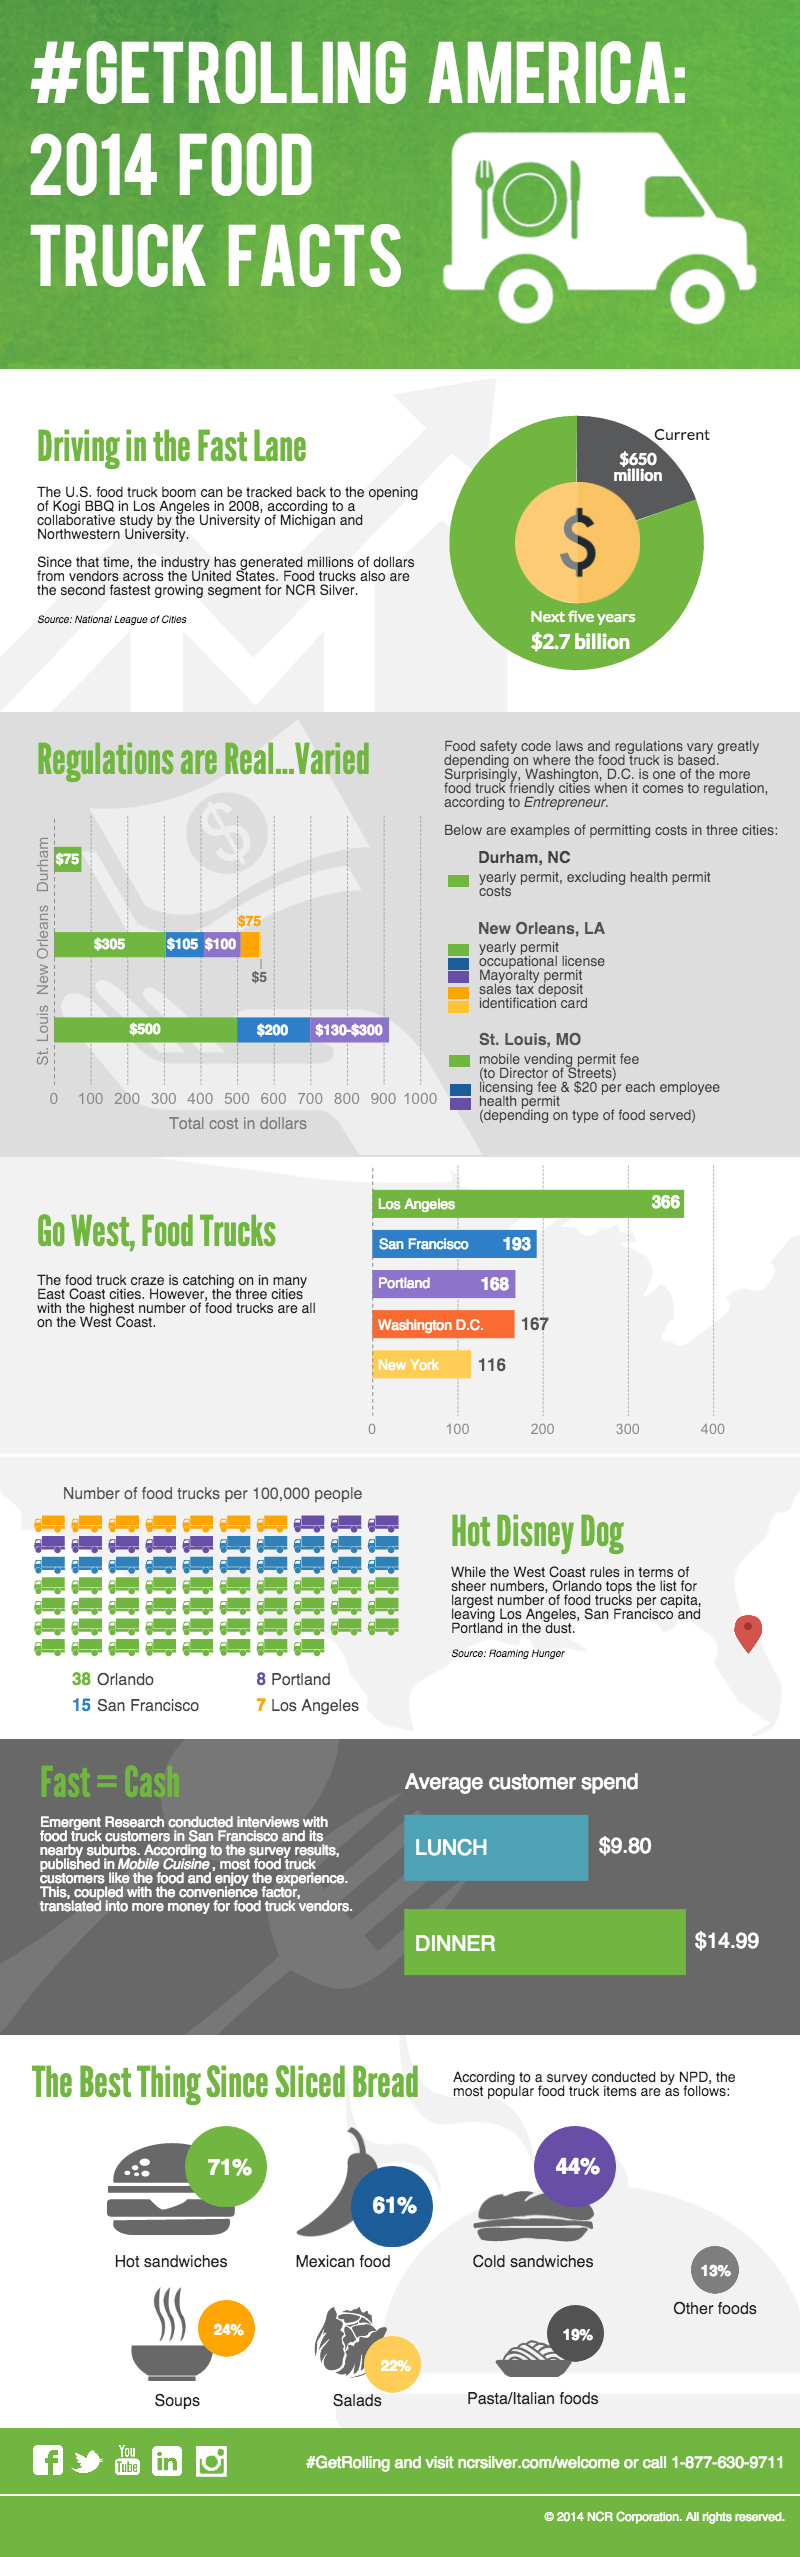 2014 Food Truck Facts